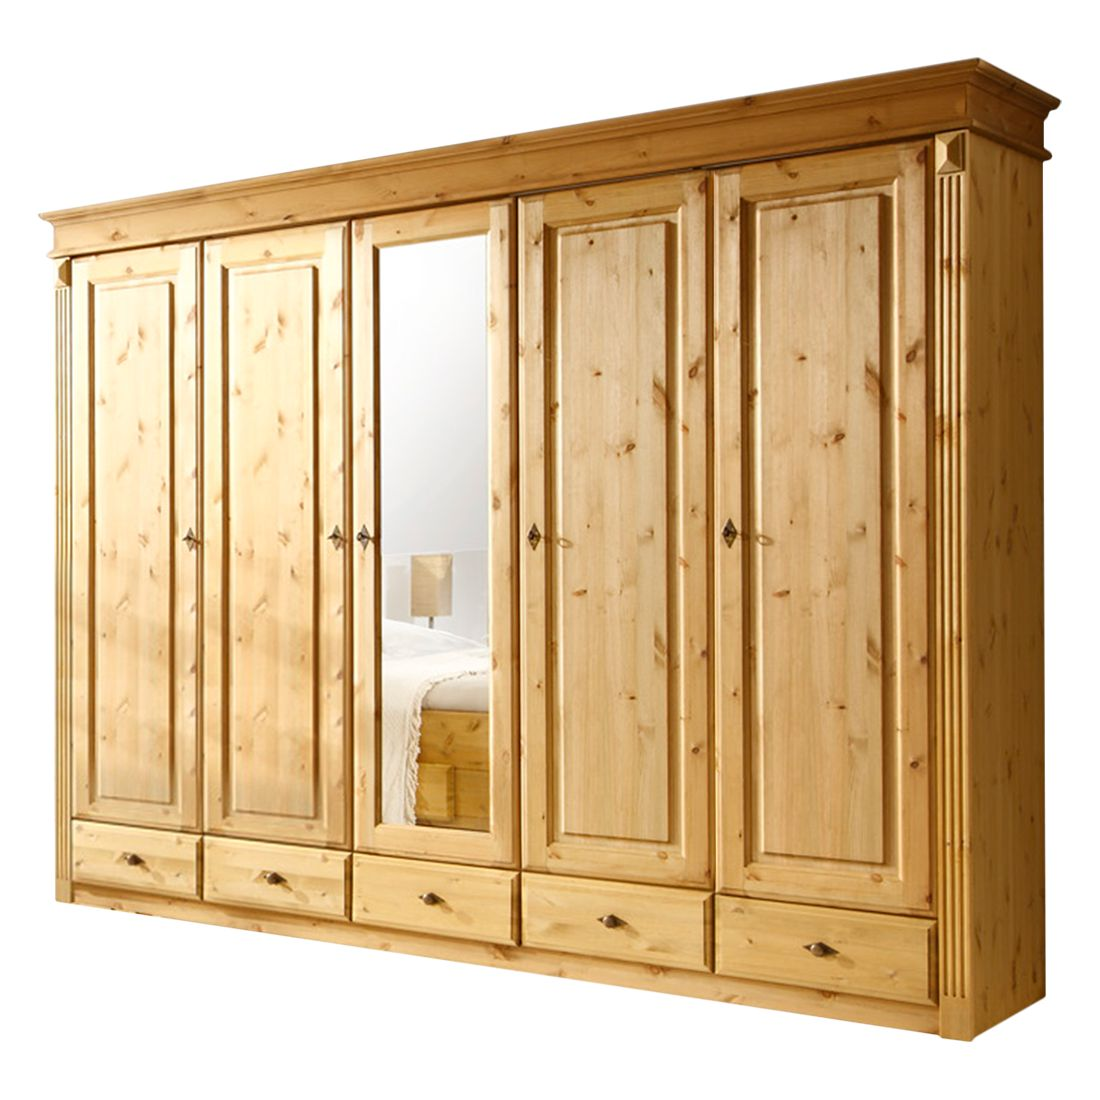 kiefer schrank natur tr komana kiefer lackiert holz natur b with kiefer schrank natur. Black Bedroom Furniture Sets. Home Design Ideas